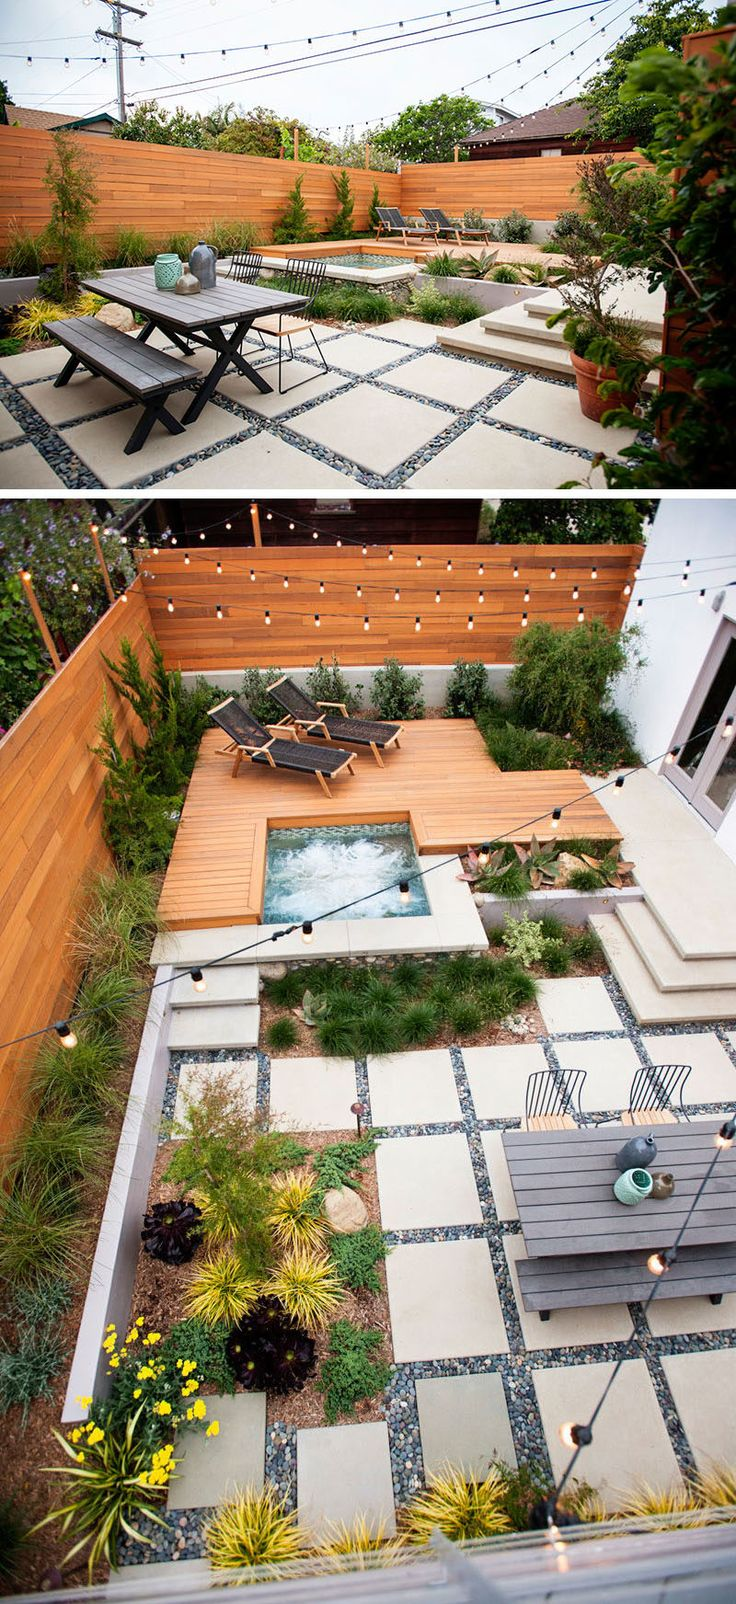 Backyard Designs Ideas 20 backyard ideas for you to get relax Landscaping Design Ideas 11 Backyards Designed For Entertaining